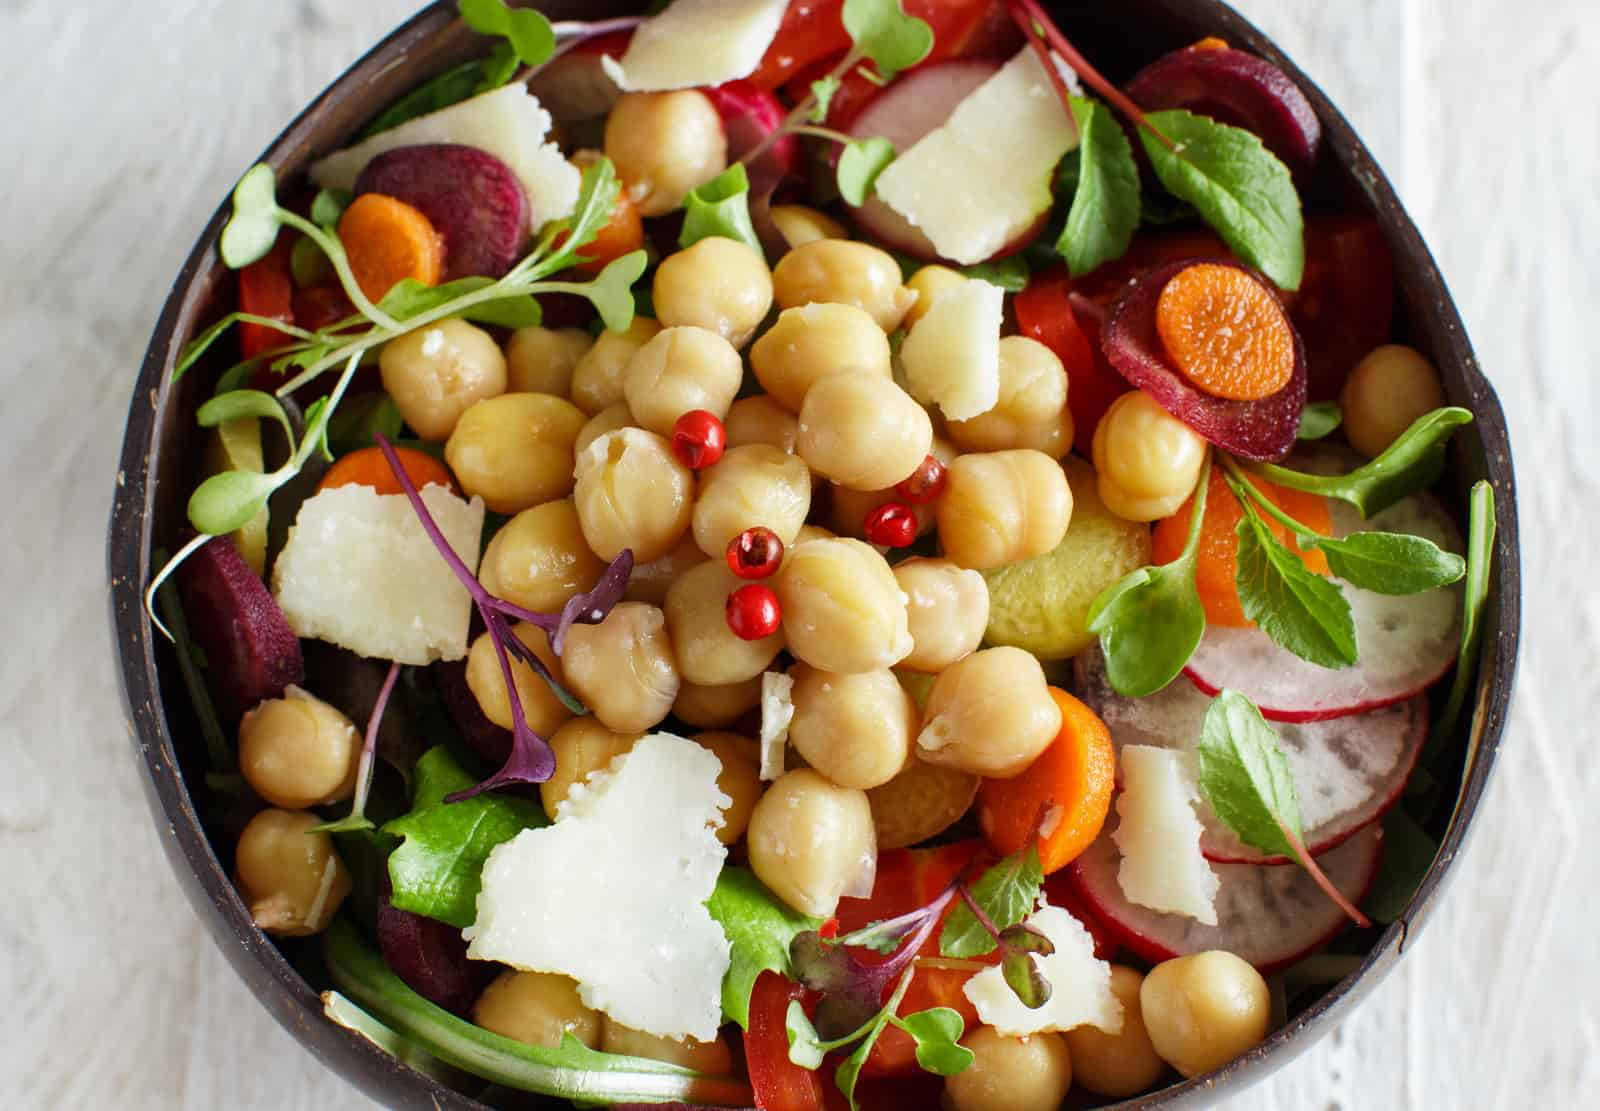 Chickpea salad with vegetables and microgreens, family recipes